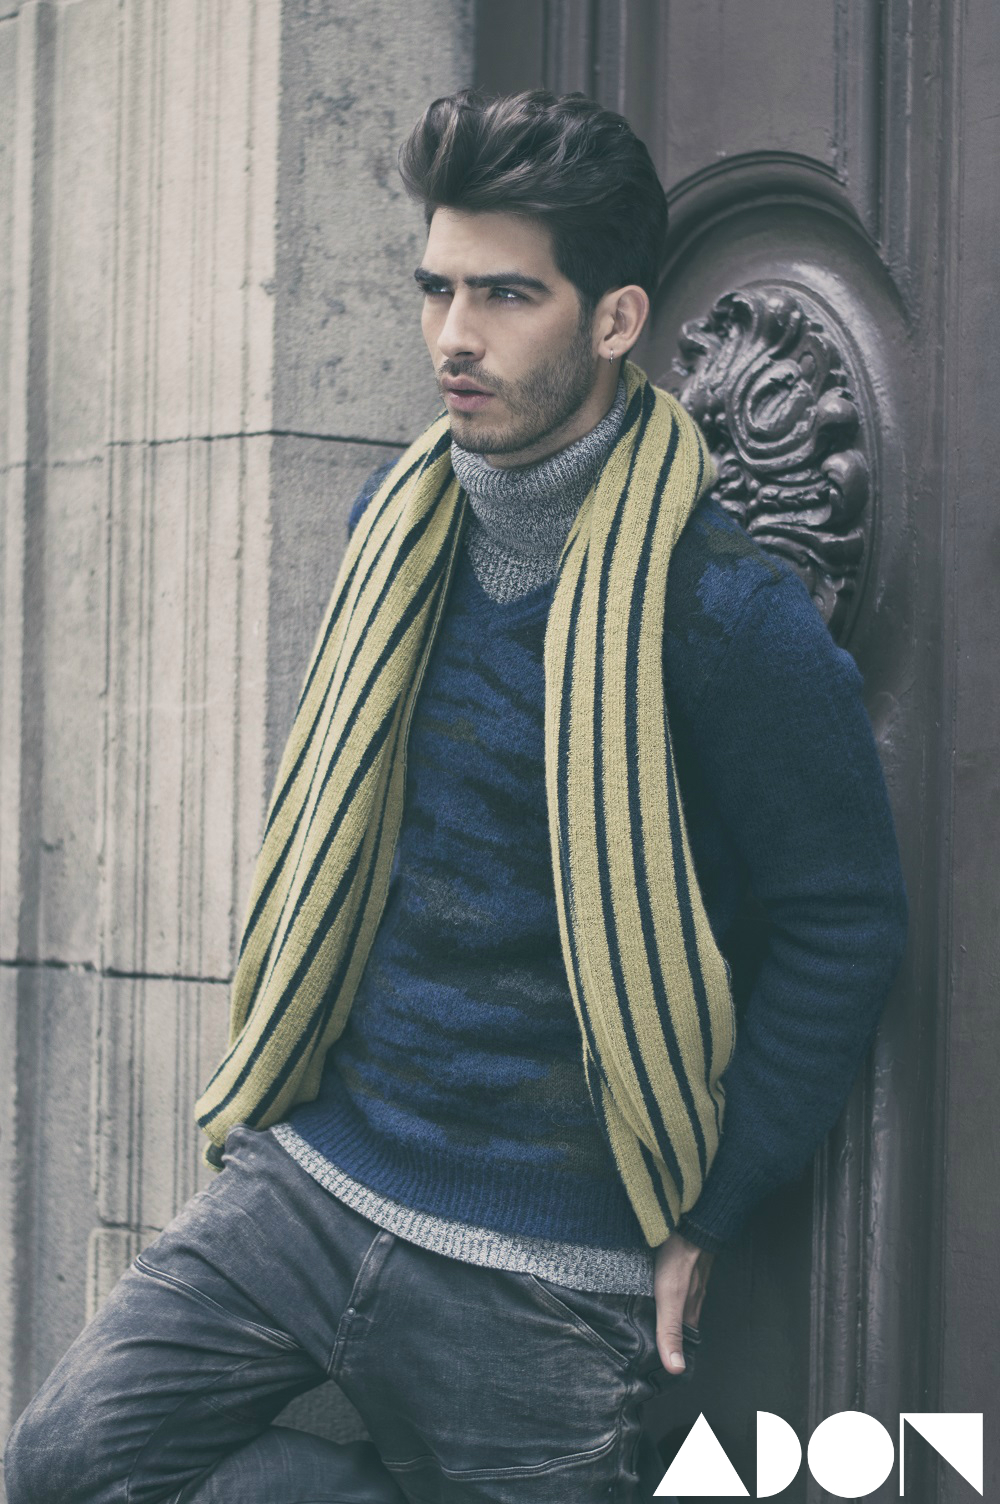 Turtleneck: G-Star, V-neck: Guess Marciano, Jeans: G-Star, Scarf: Biel lo